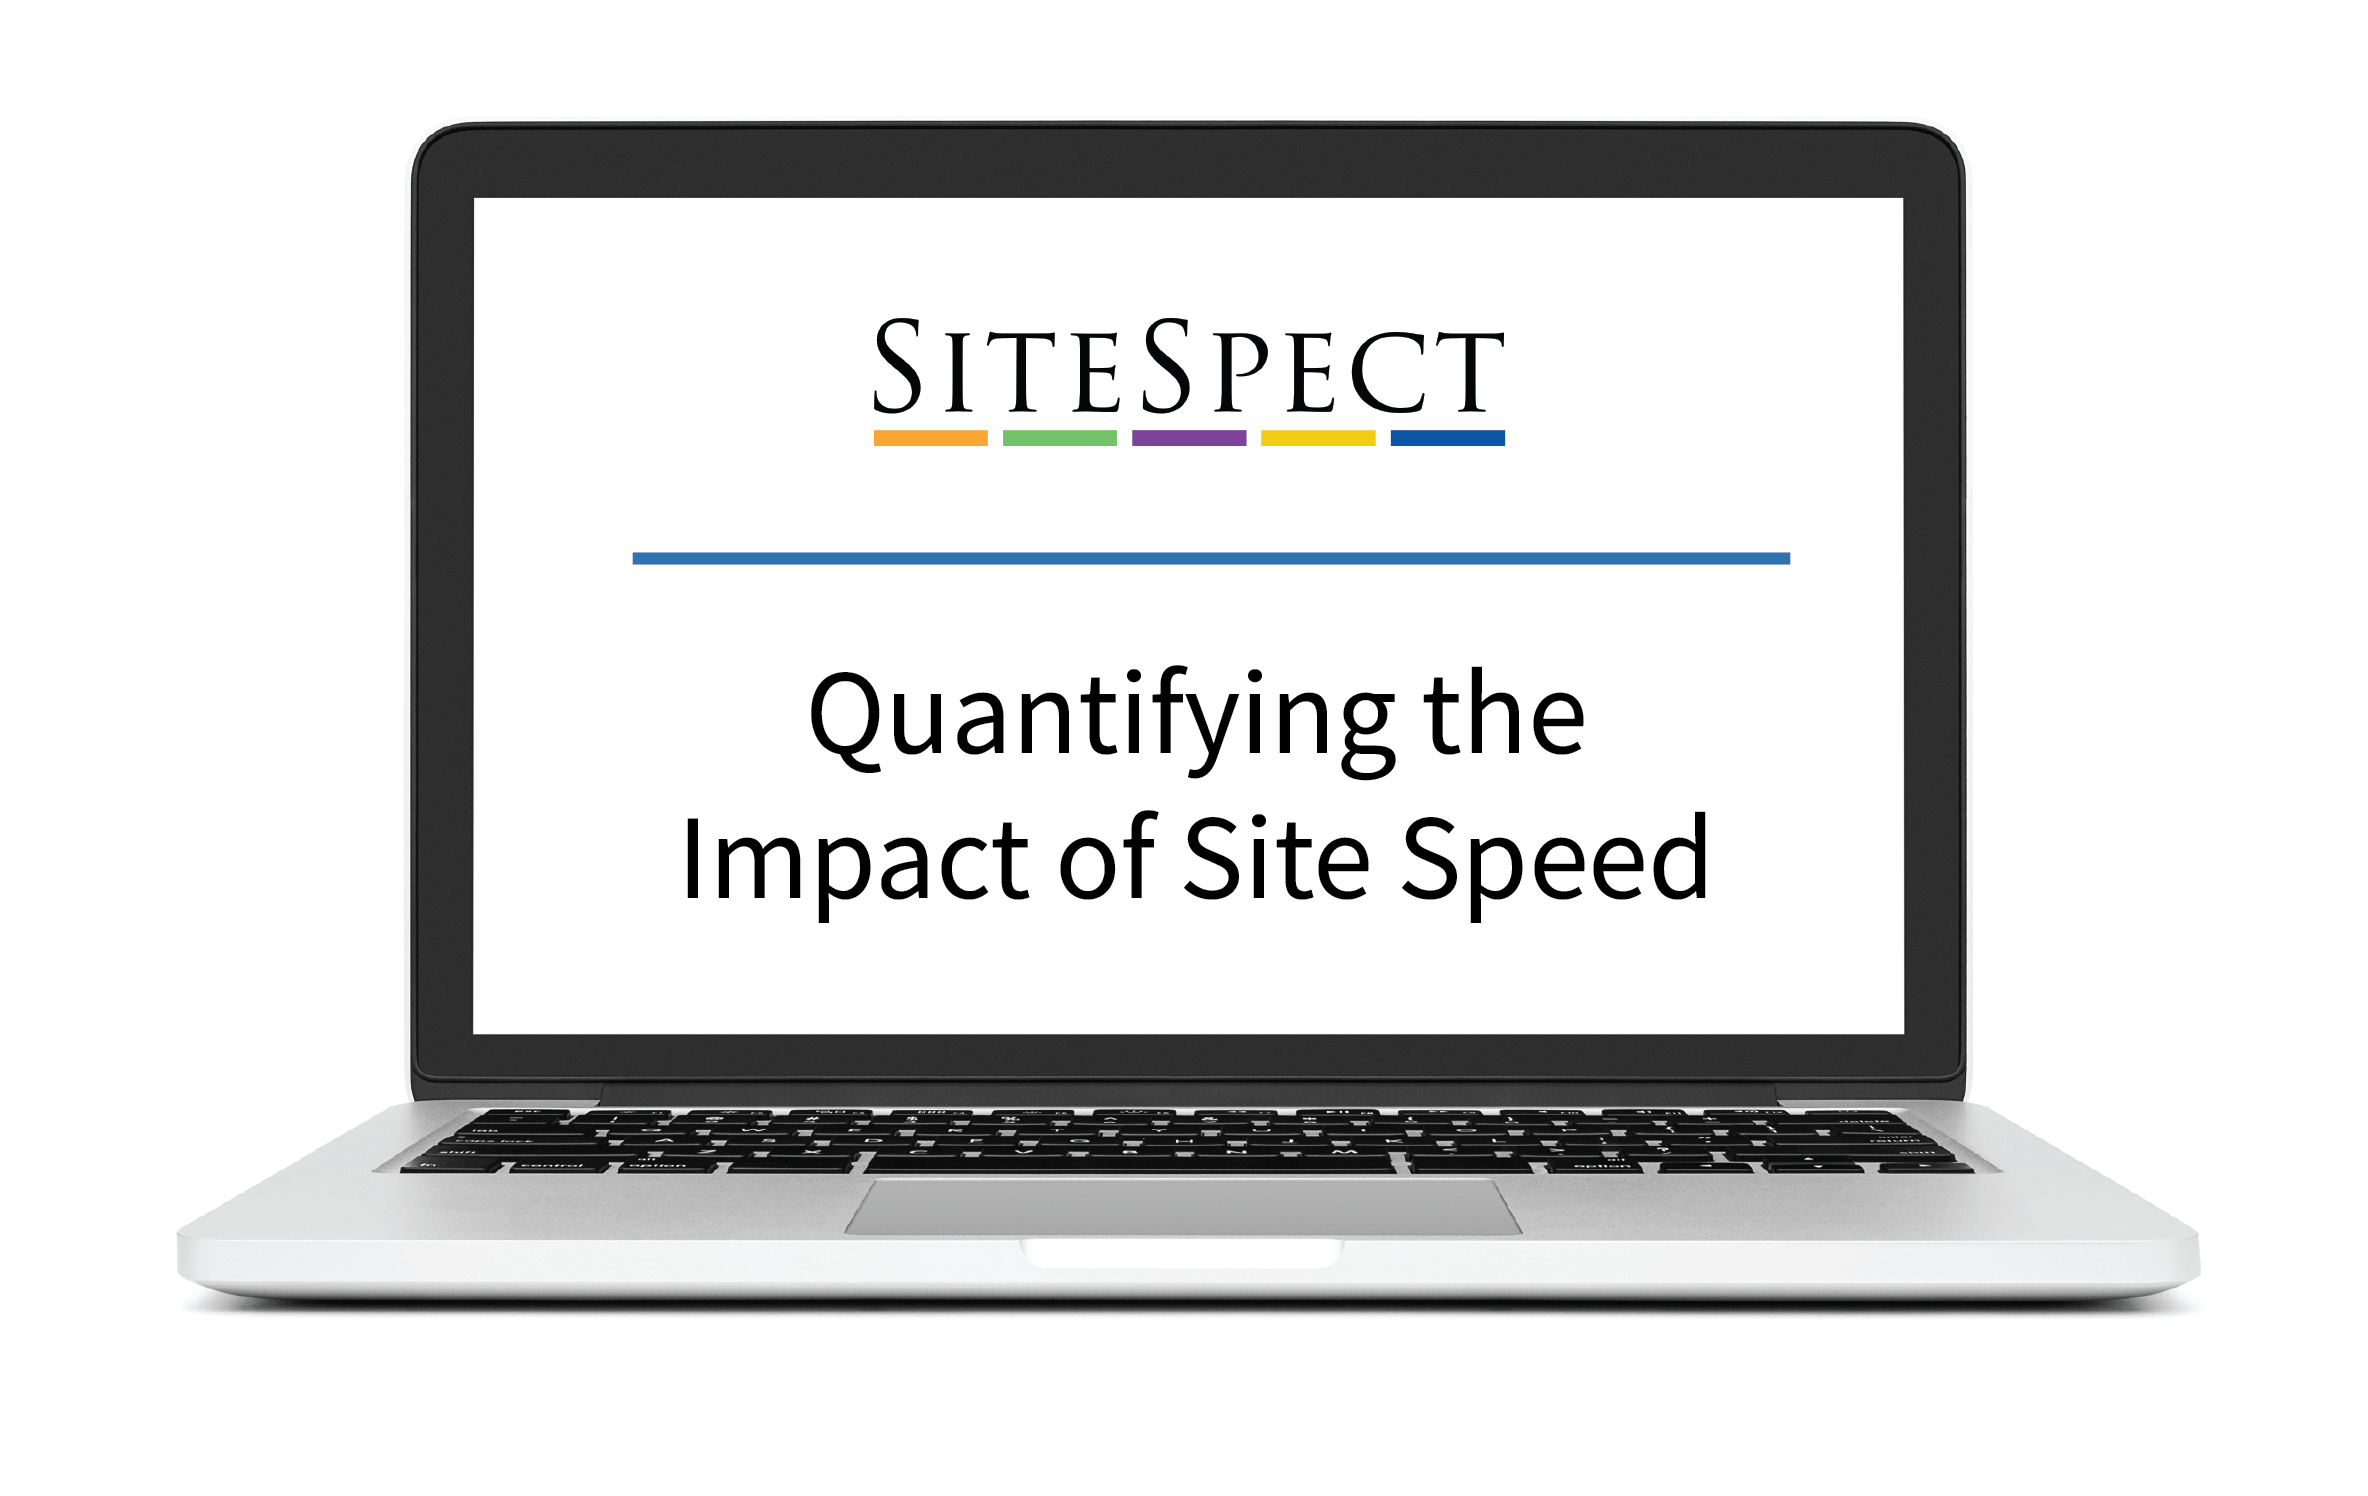 site speed case study